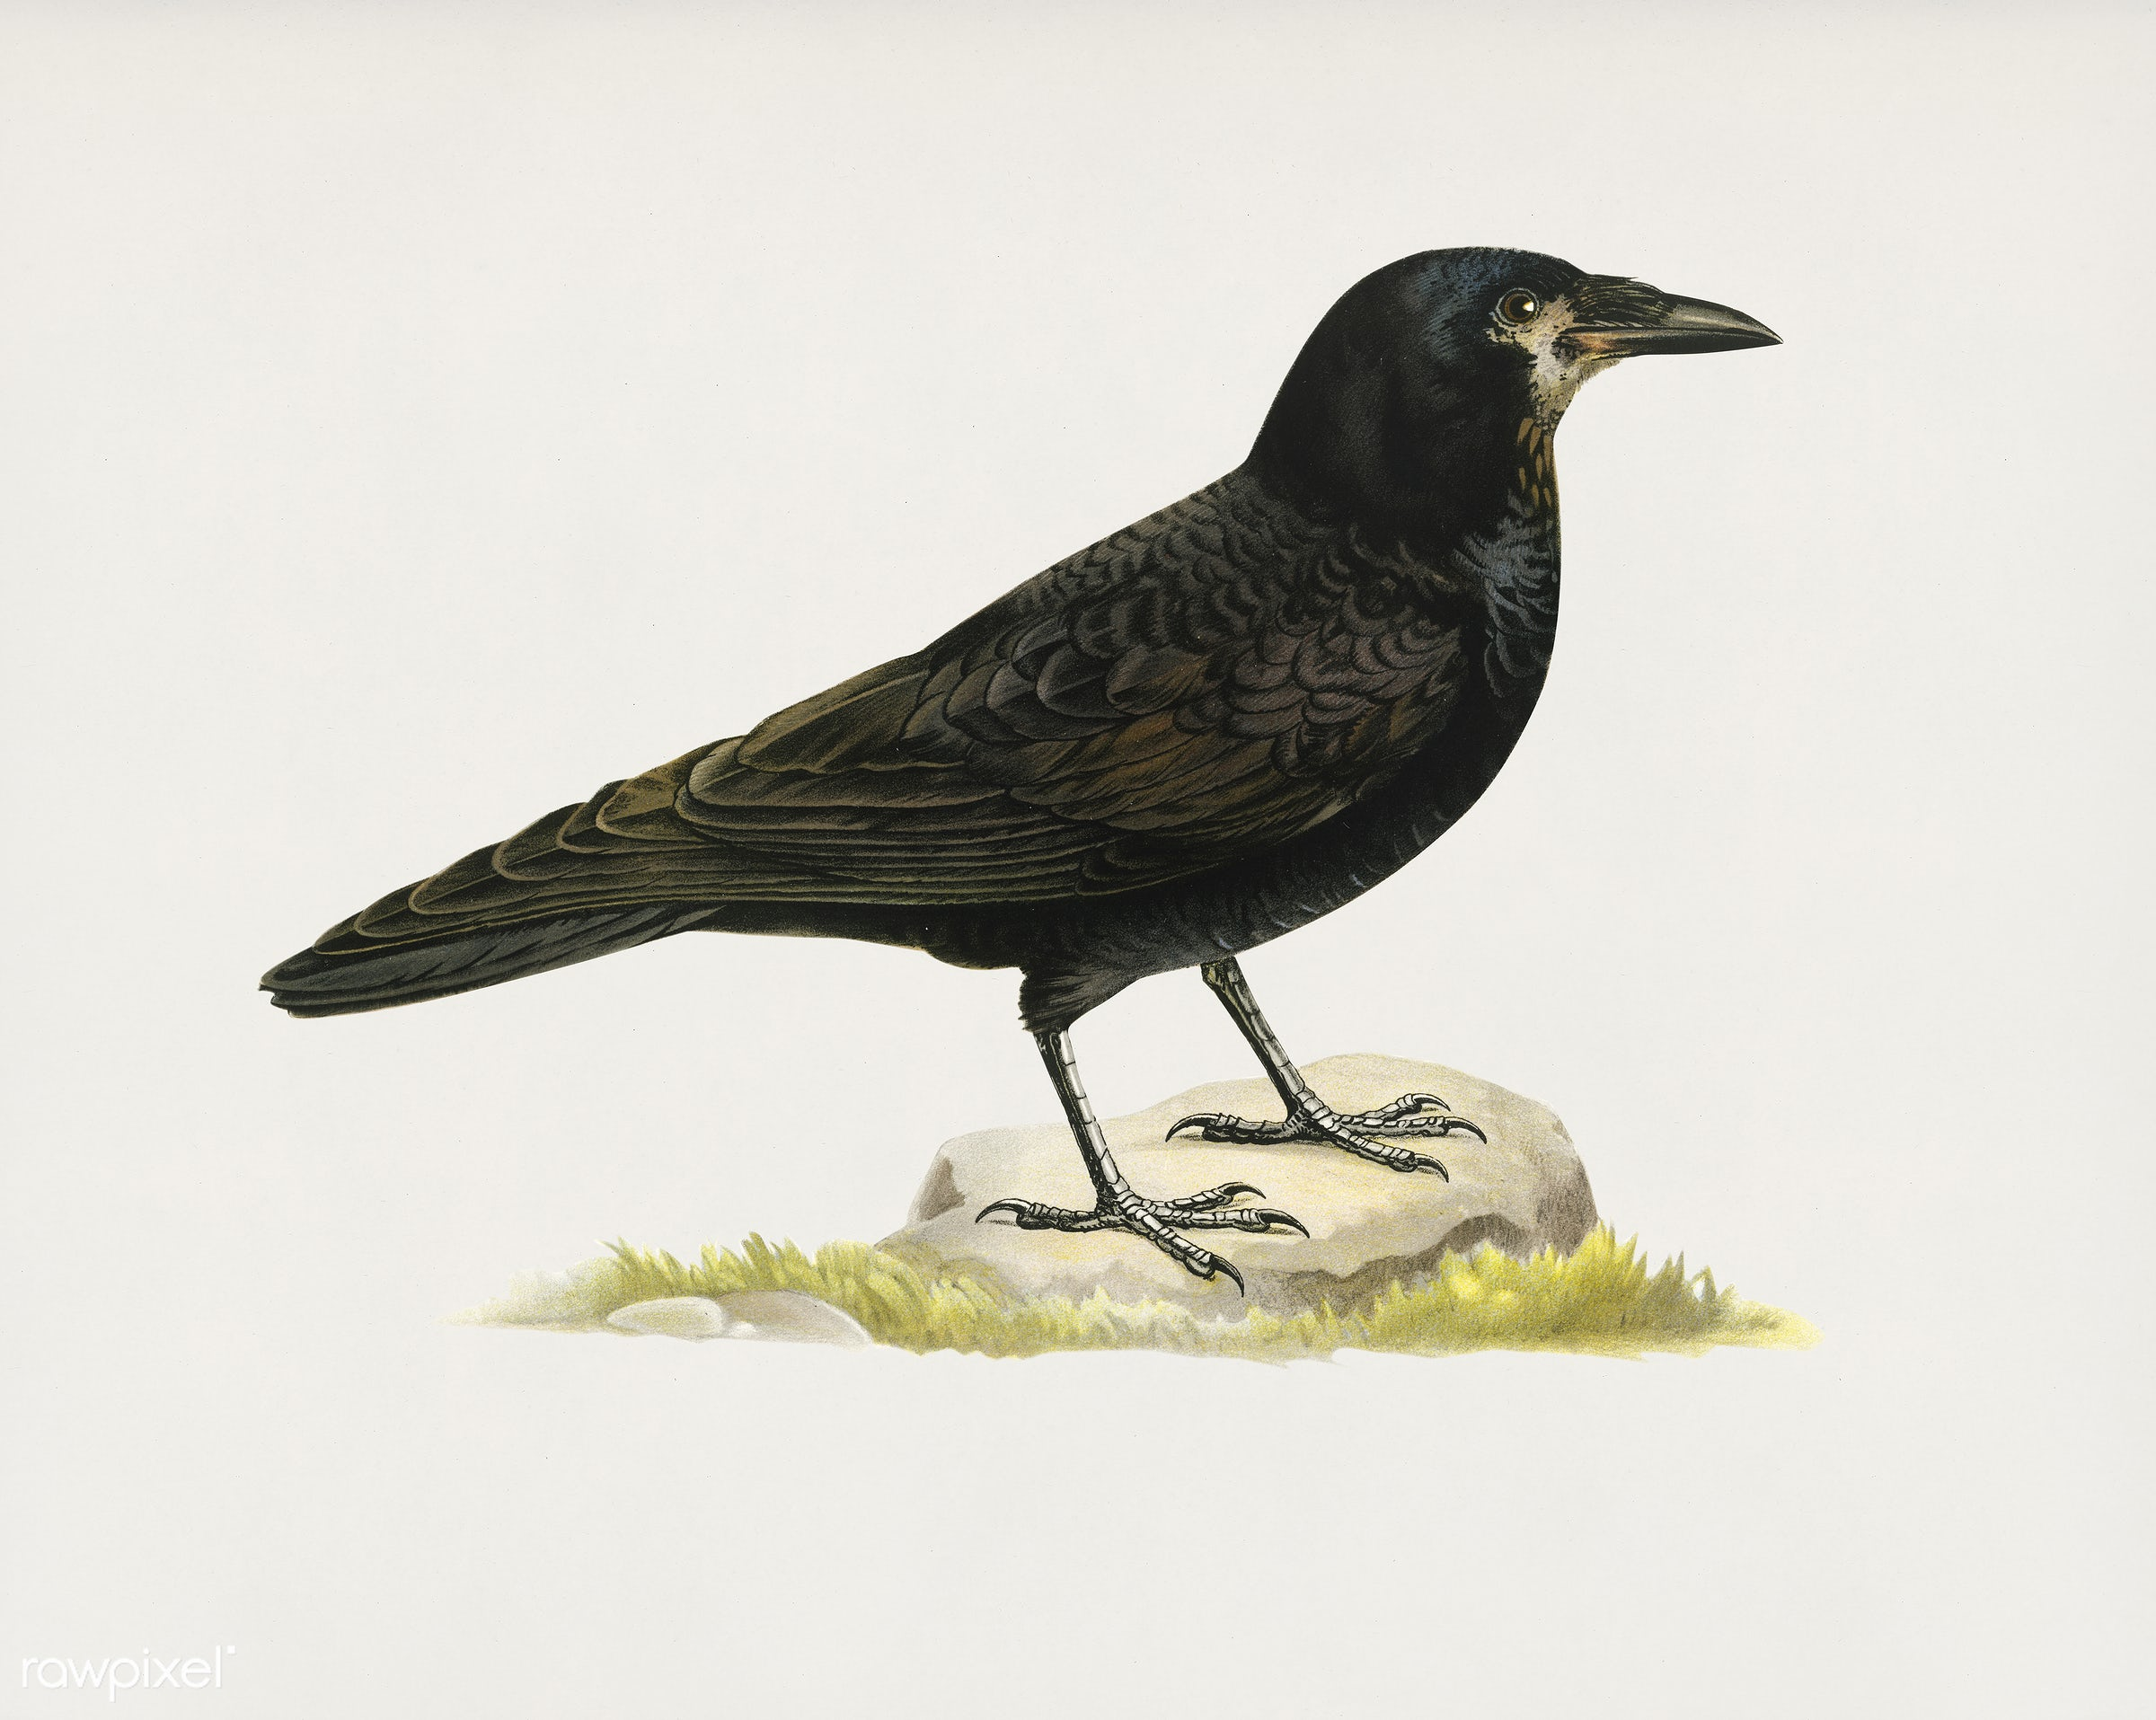 Rook (Corvus Frugilegus) illustrated by the von Wright brothers. Digitally enhanced from our own 1929 folio version of...